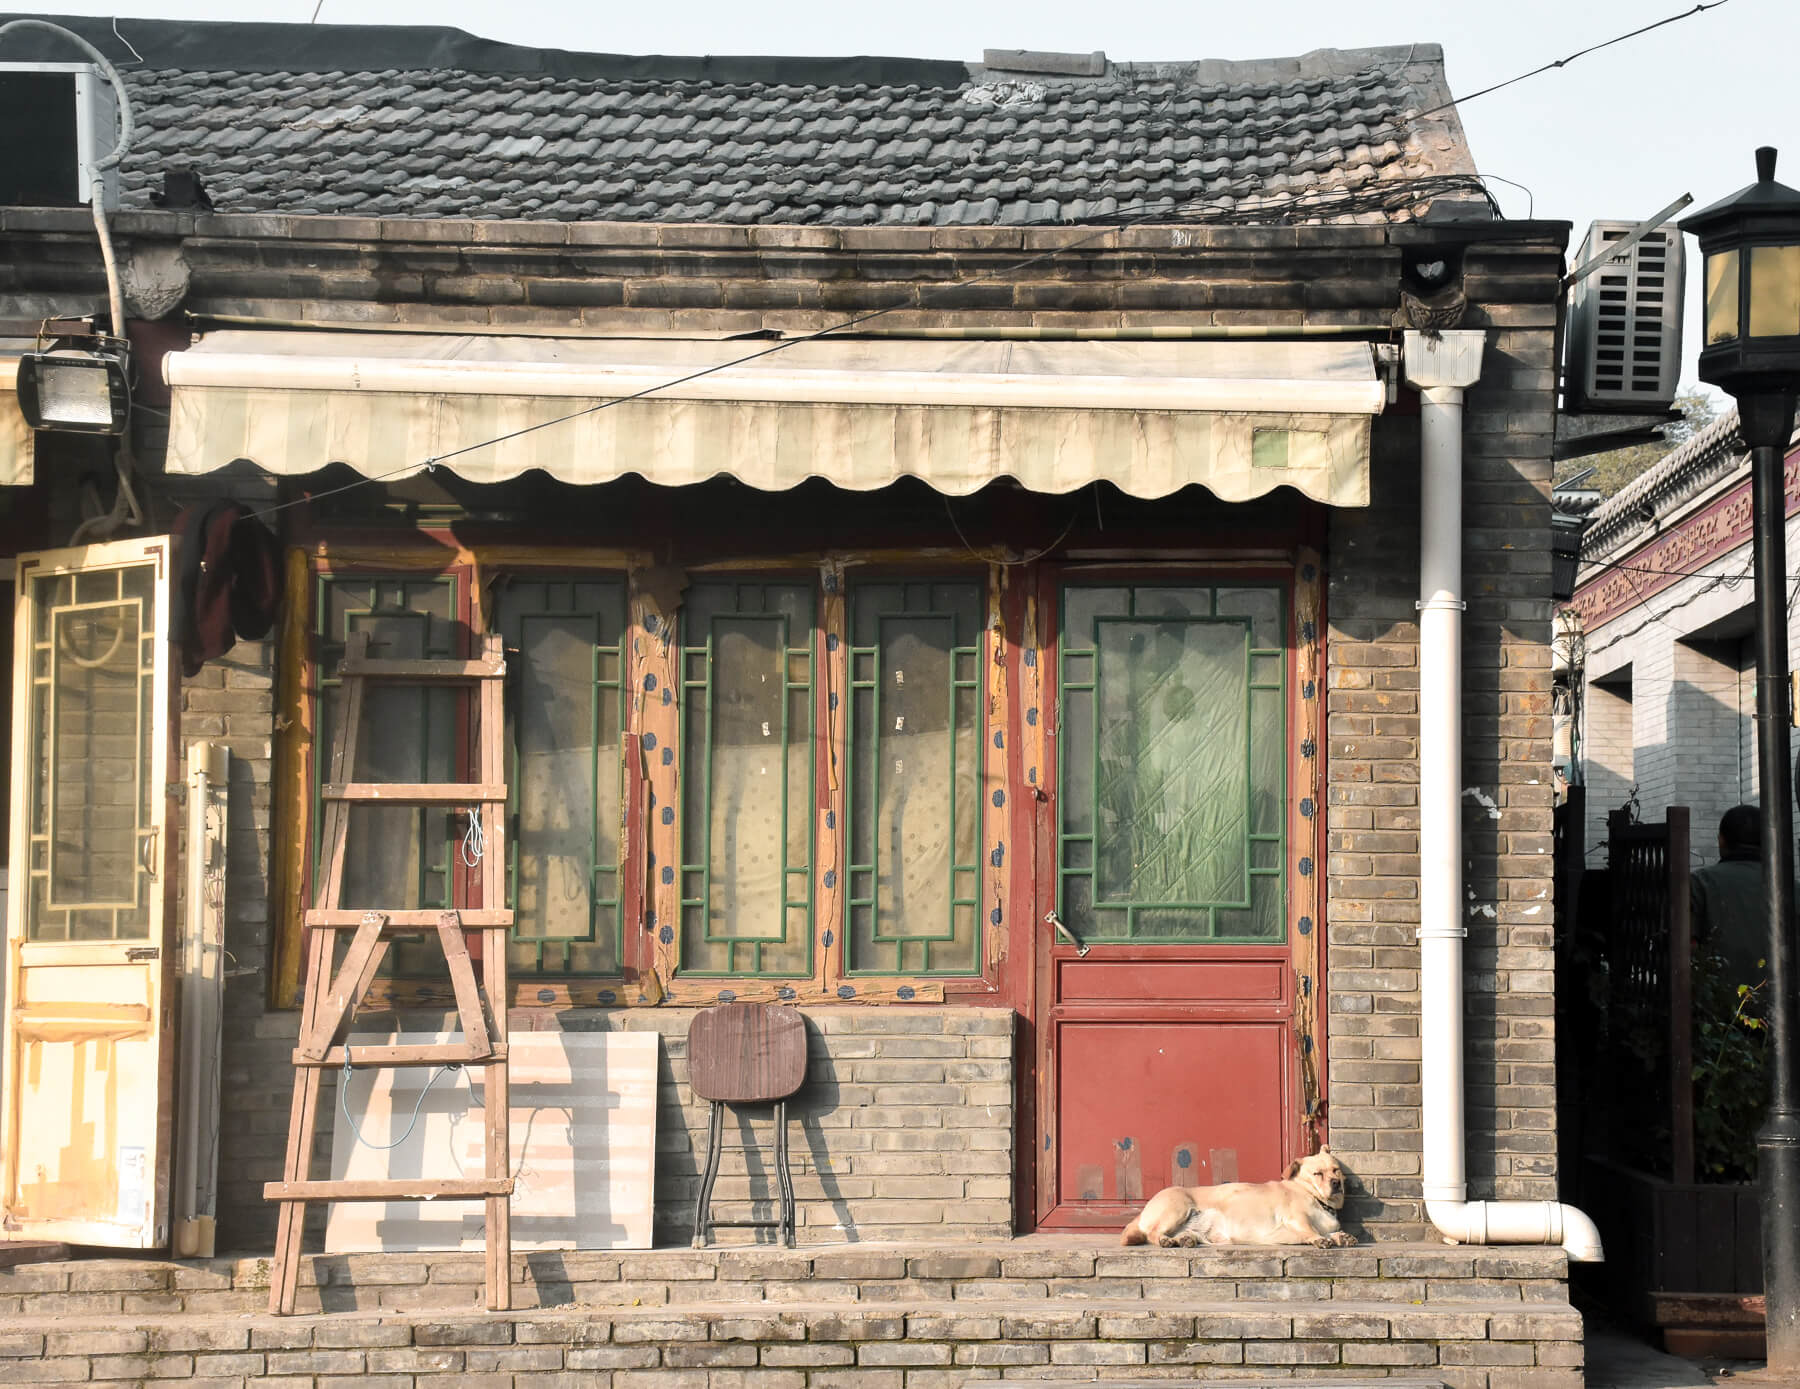 A labrador sleeping on the front door step of an old house in Hutong